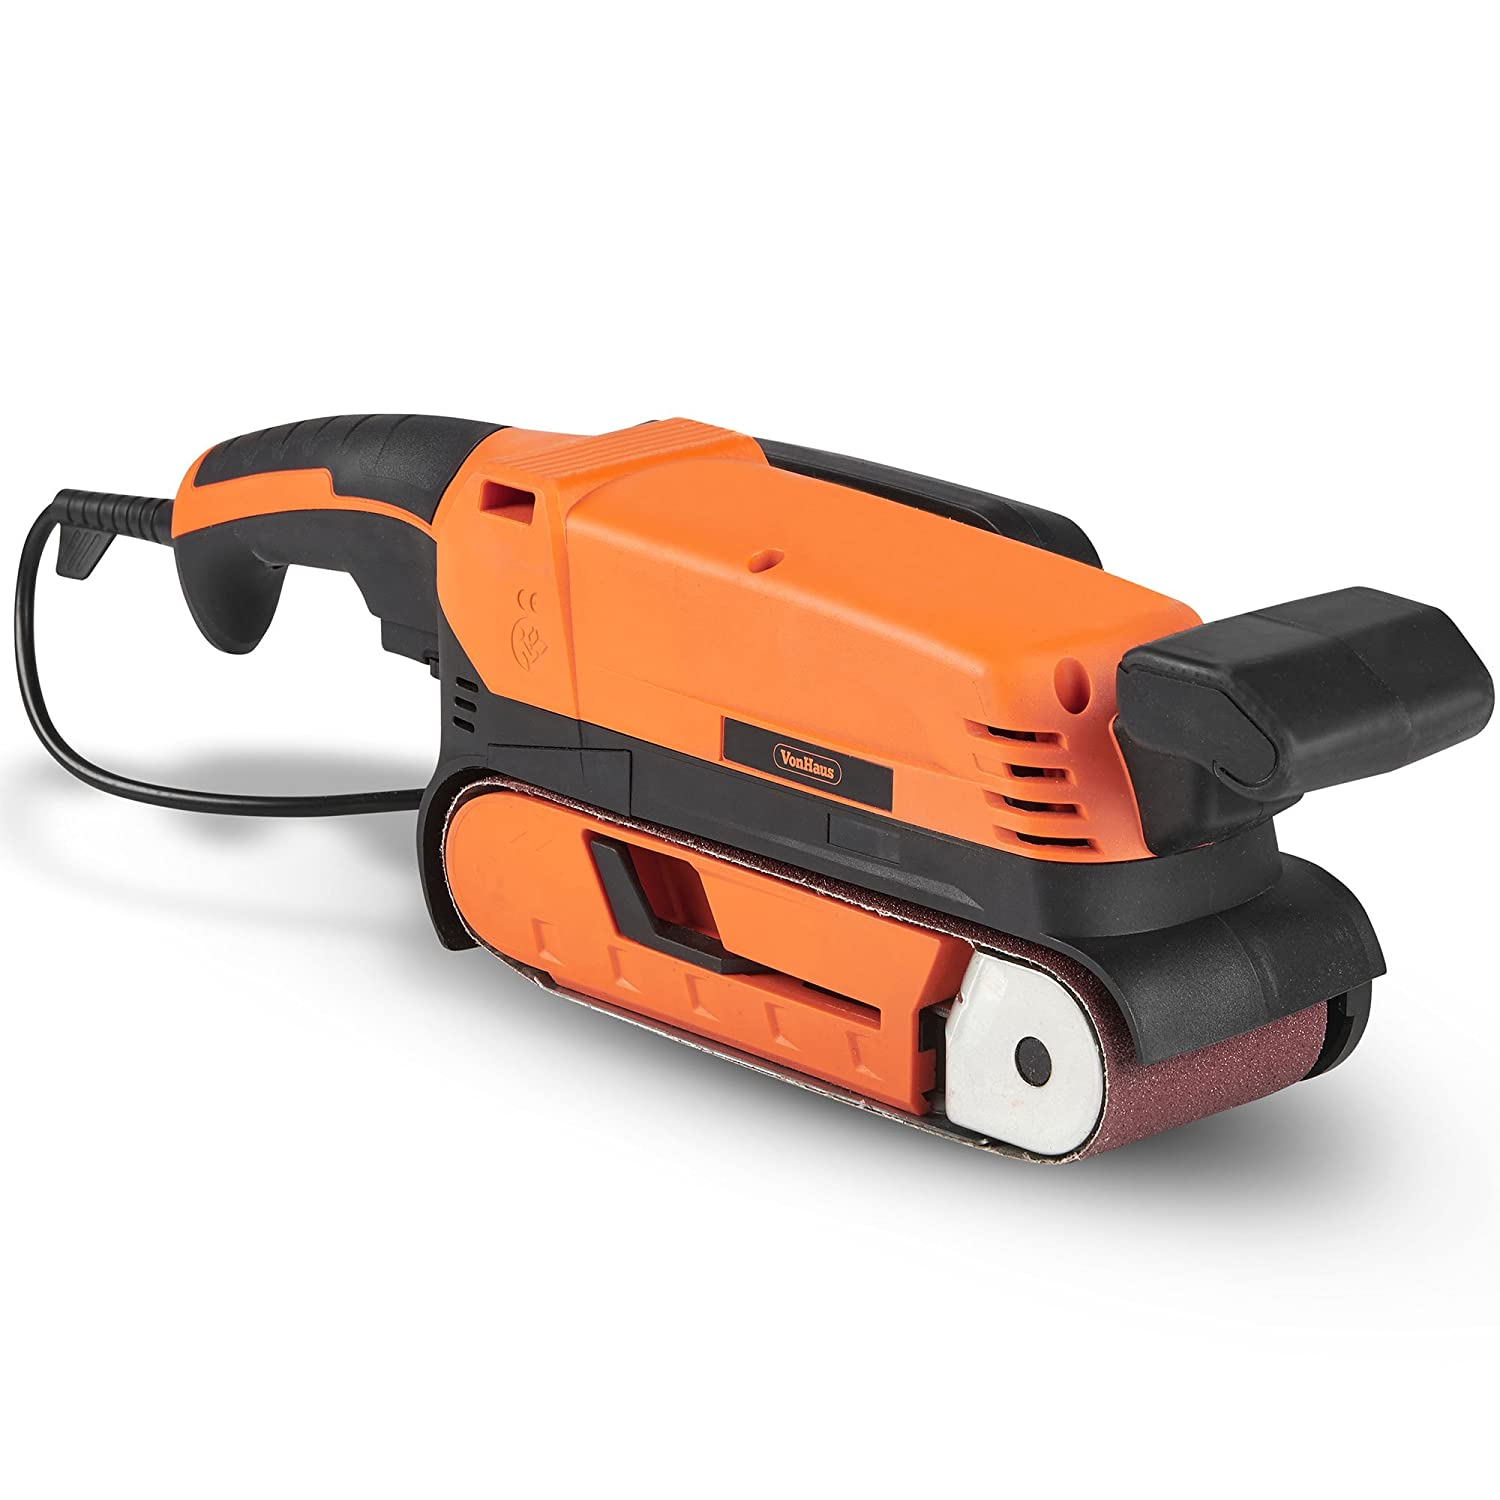 VonHaus 900W Belt Sander – Includes Variable Speed Settings, Clamps & Dust Extraction/Removal